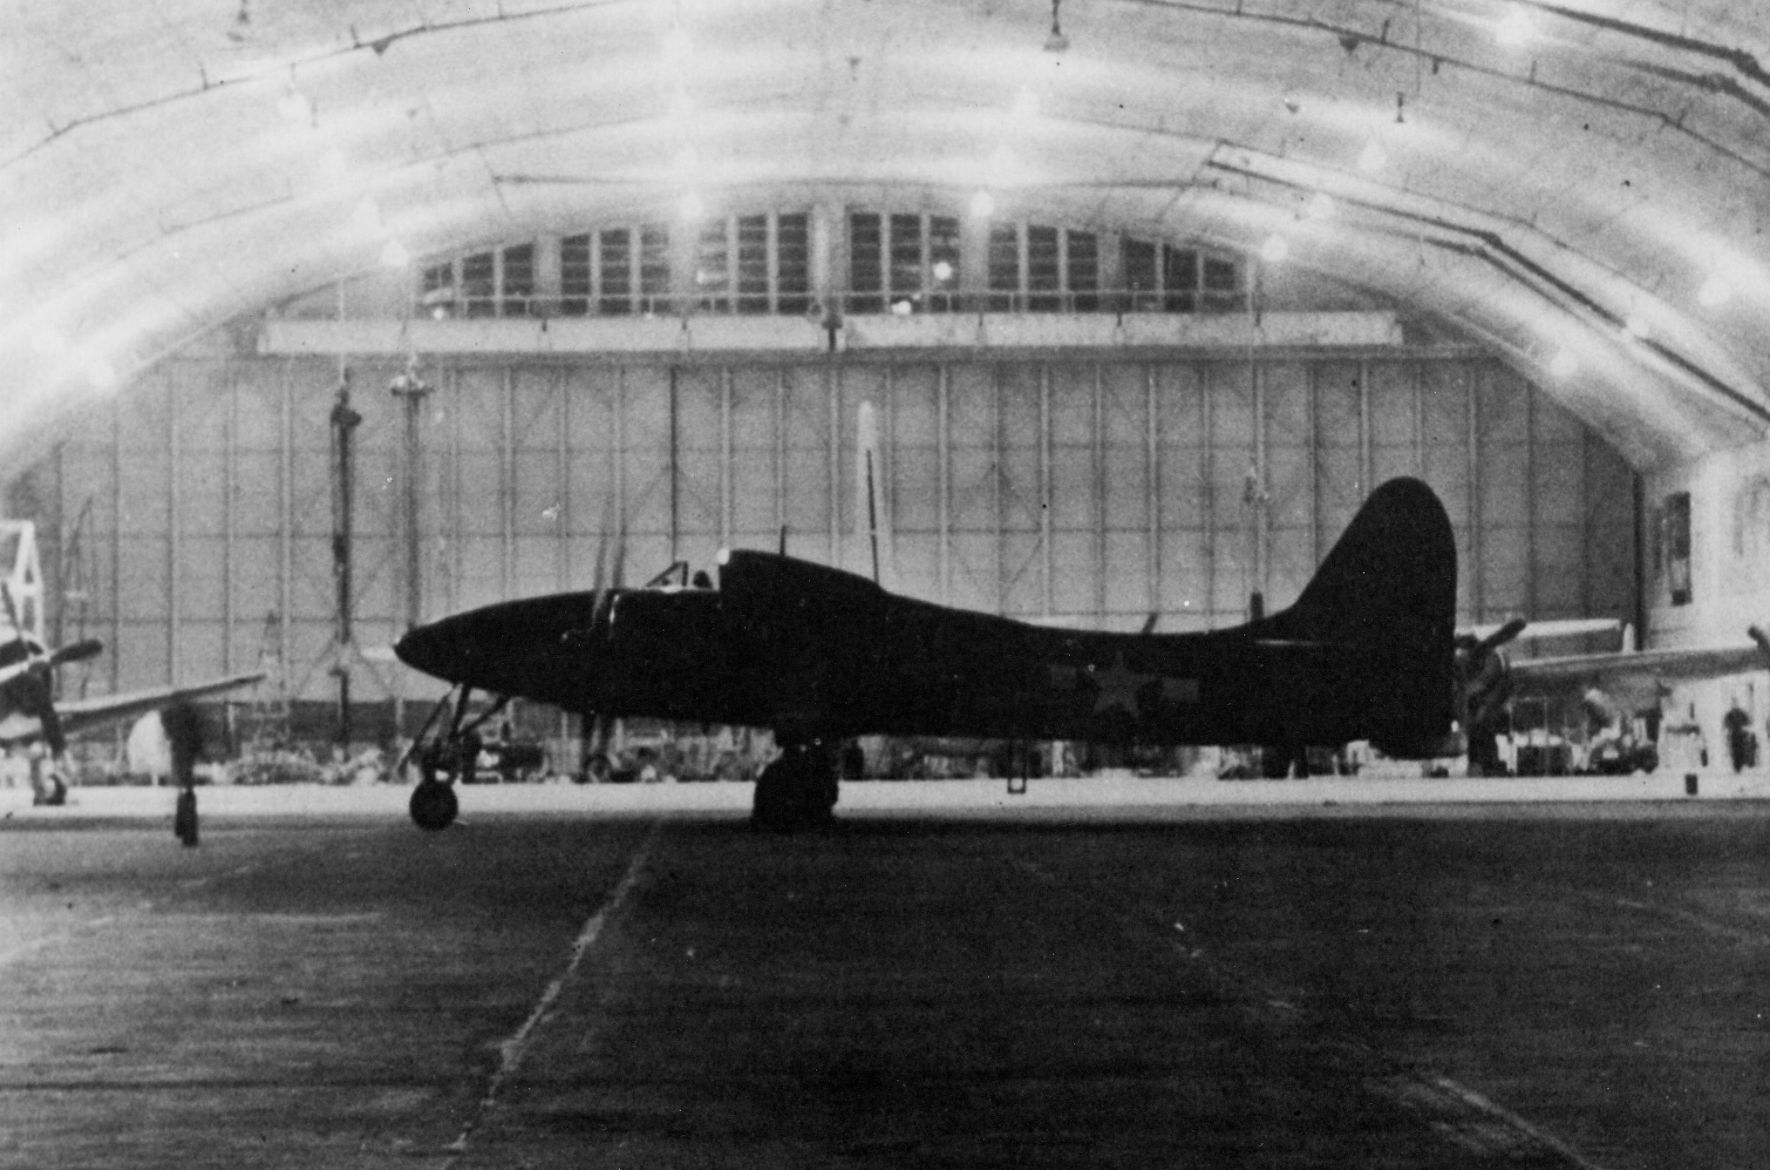 An F7F Tigercat was one of the